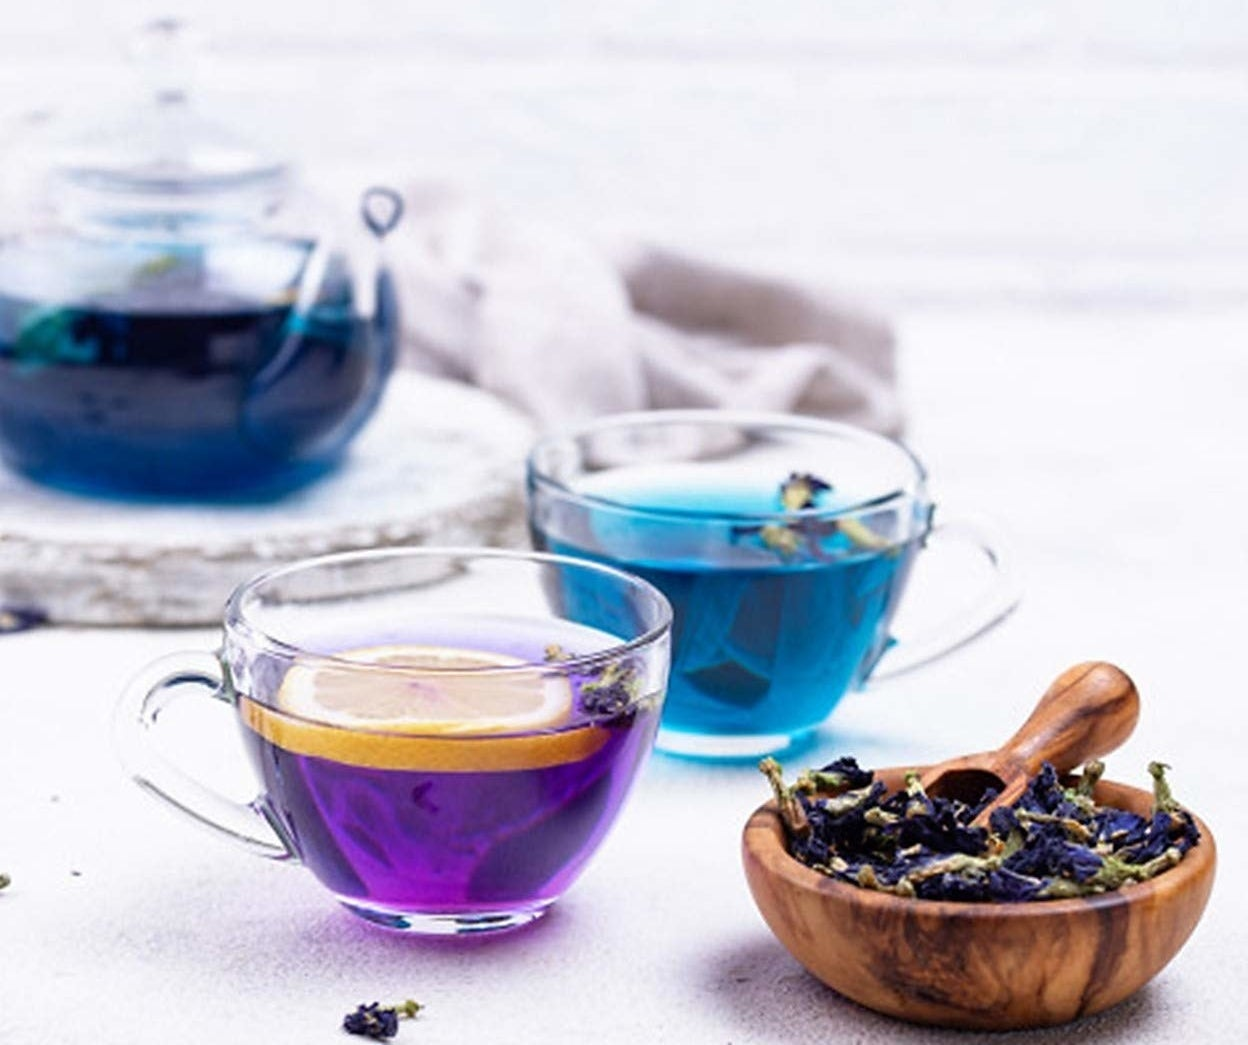 A transparent teacup with blue tea and one with lemon turning the tea purple.